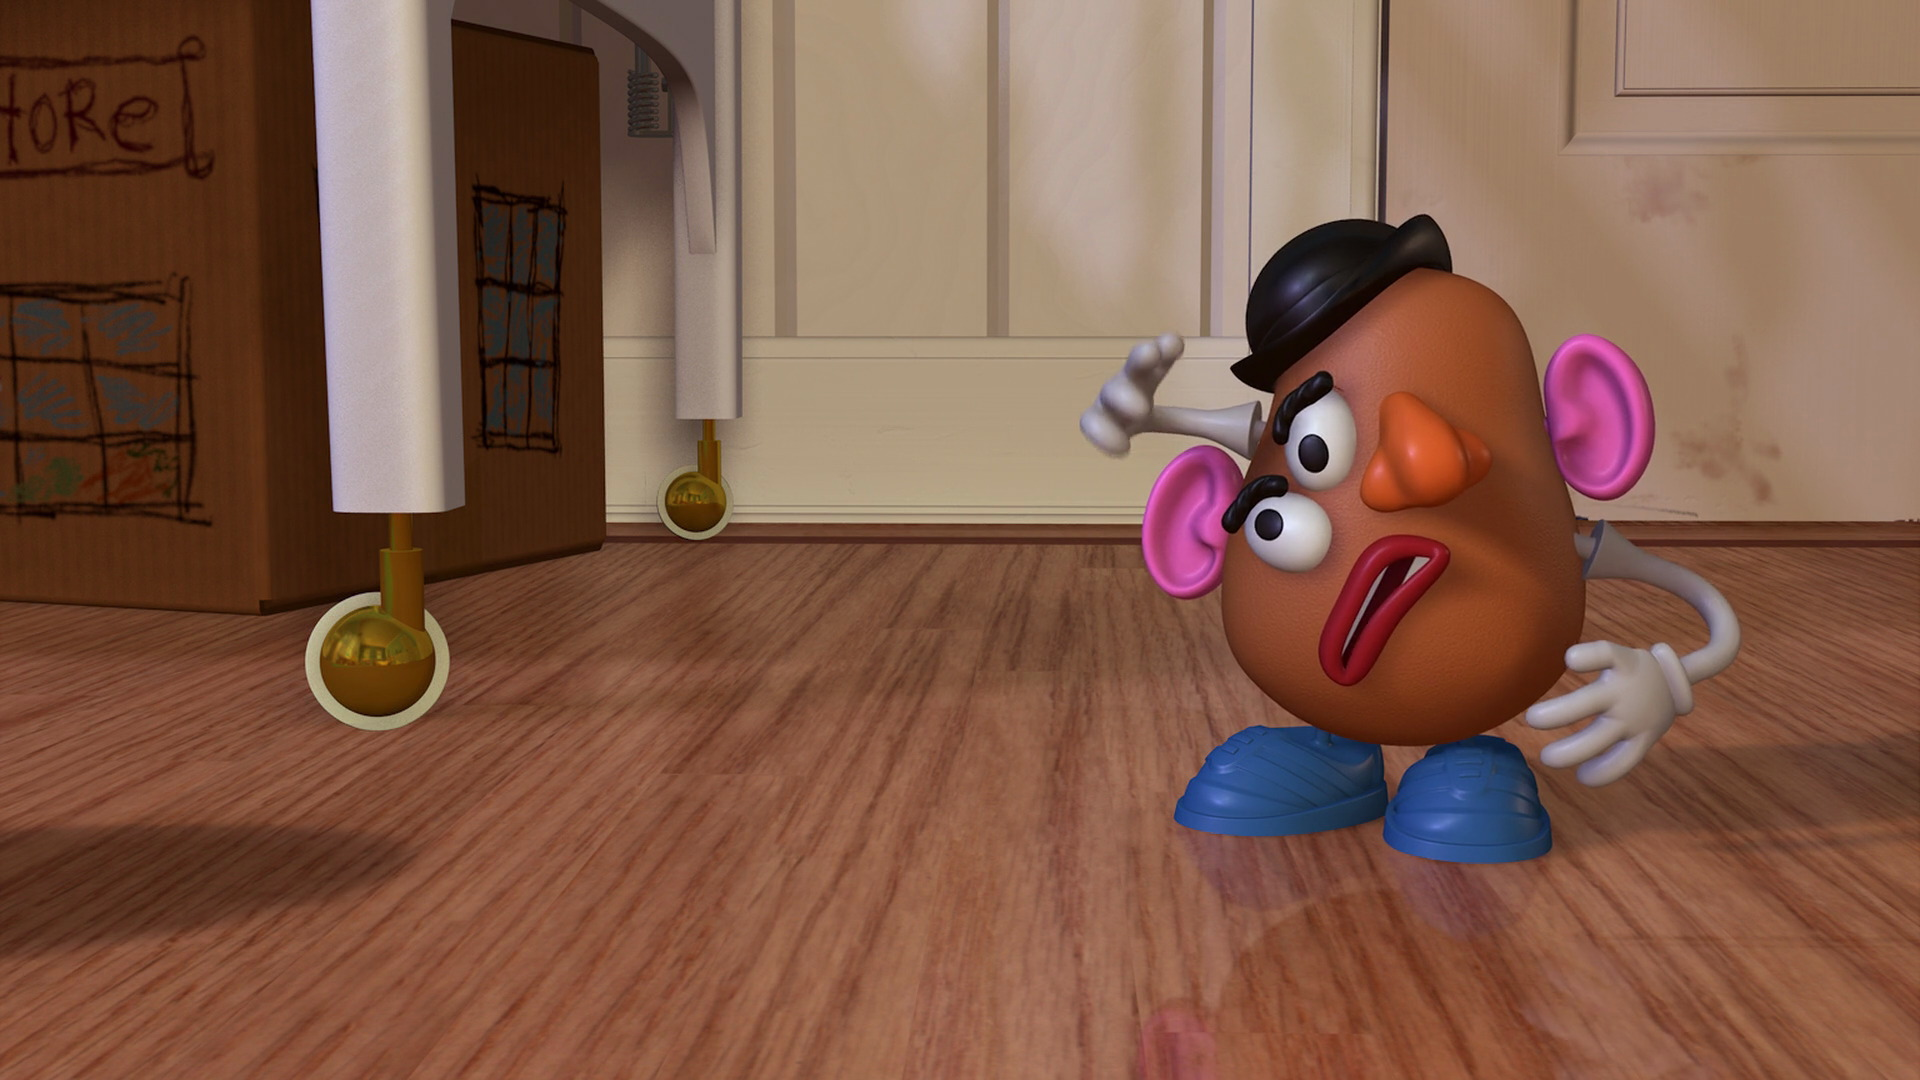 Mr Potato Head Character From Toy Story Pixar Planet Fr